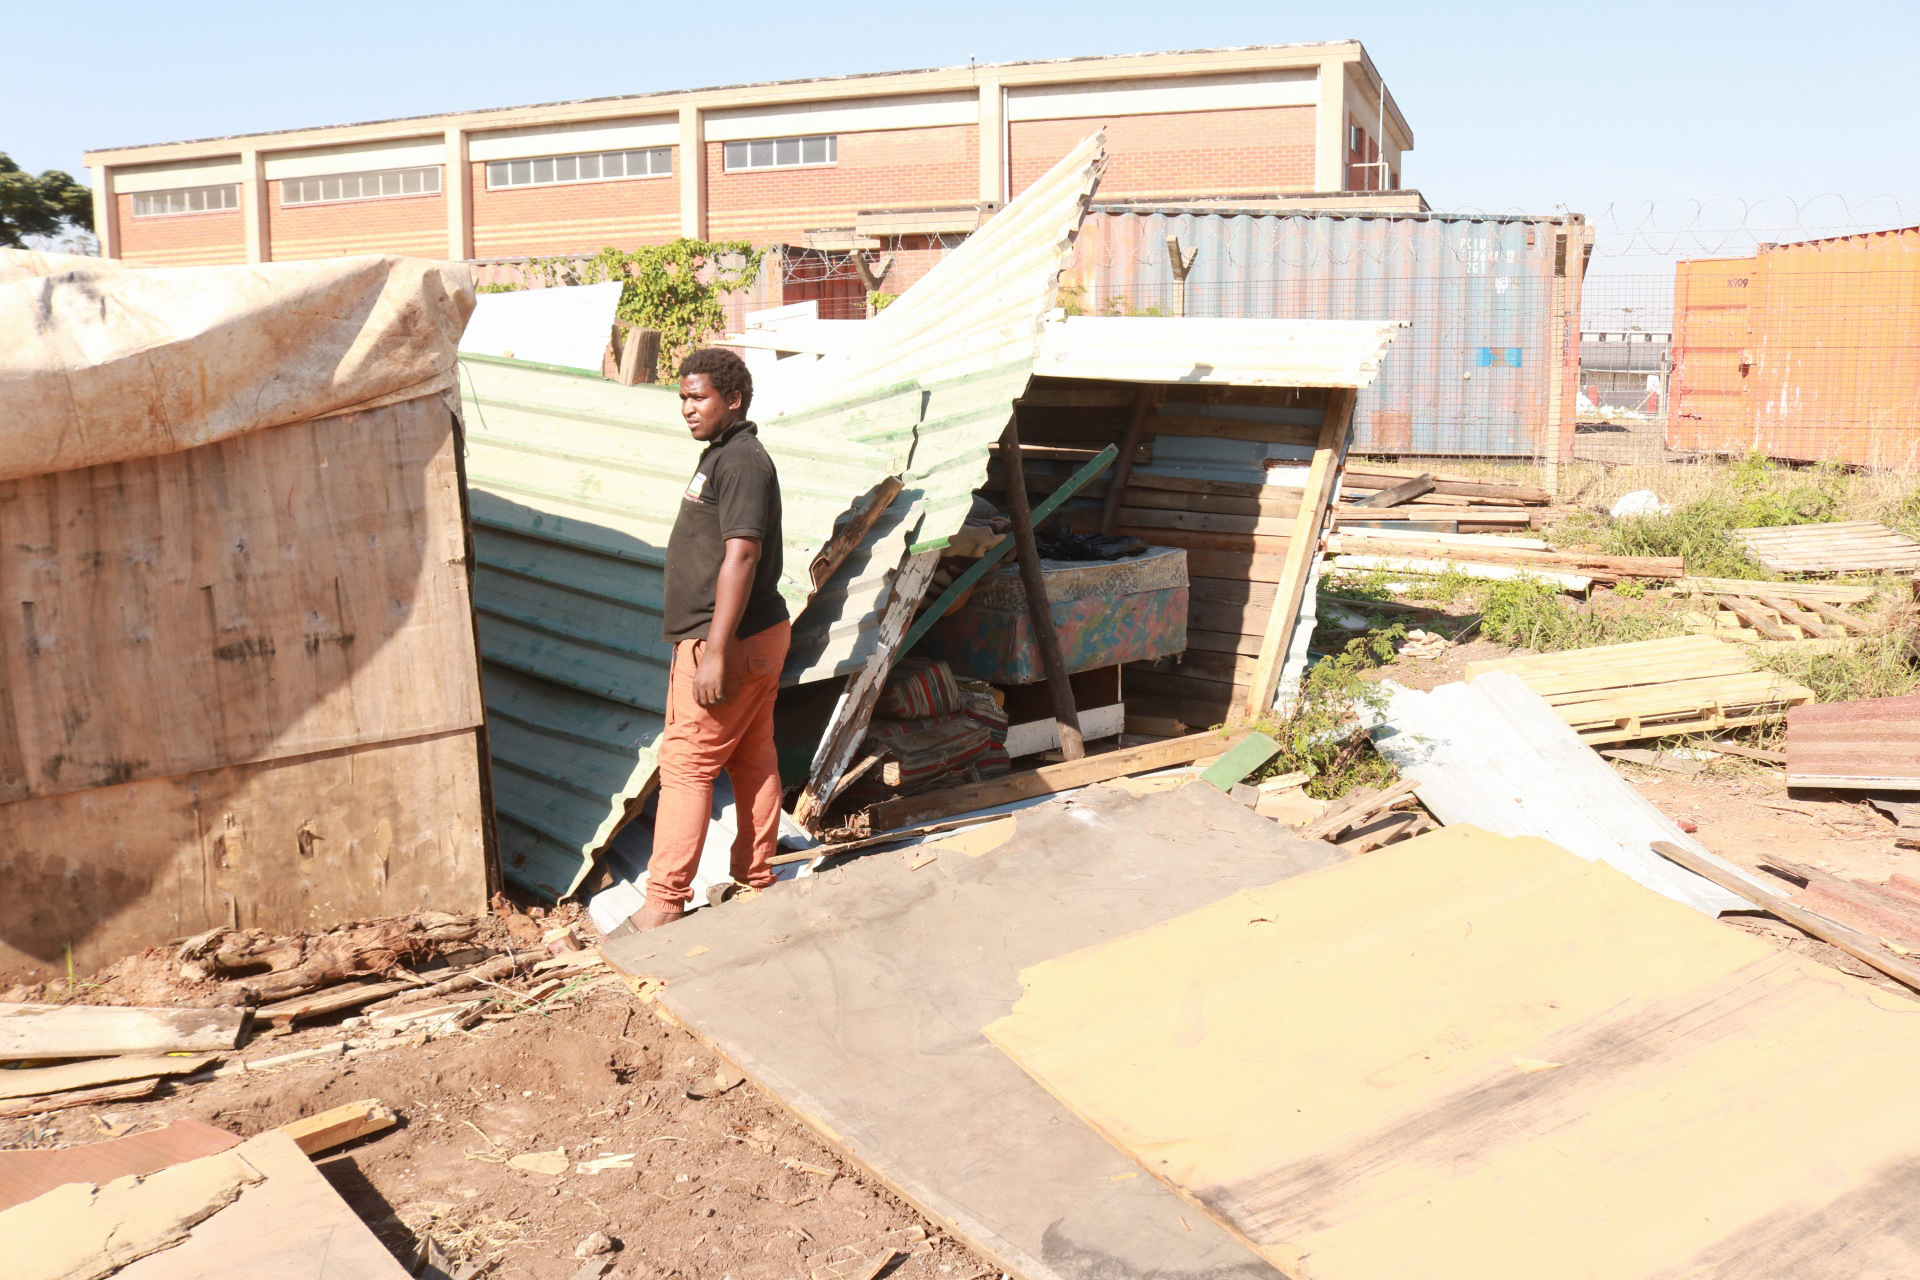 Evicted Durban residents say city had no court order